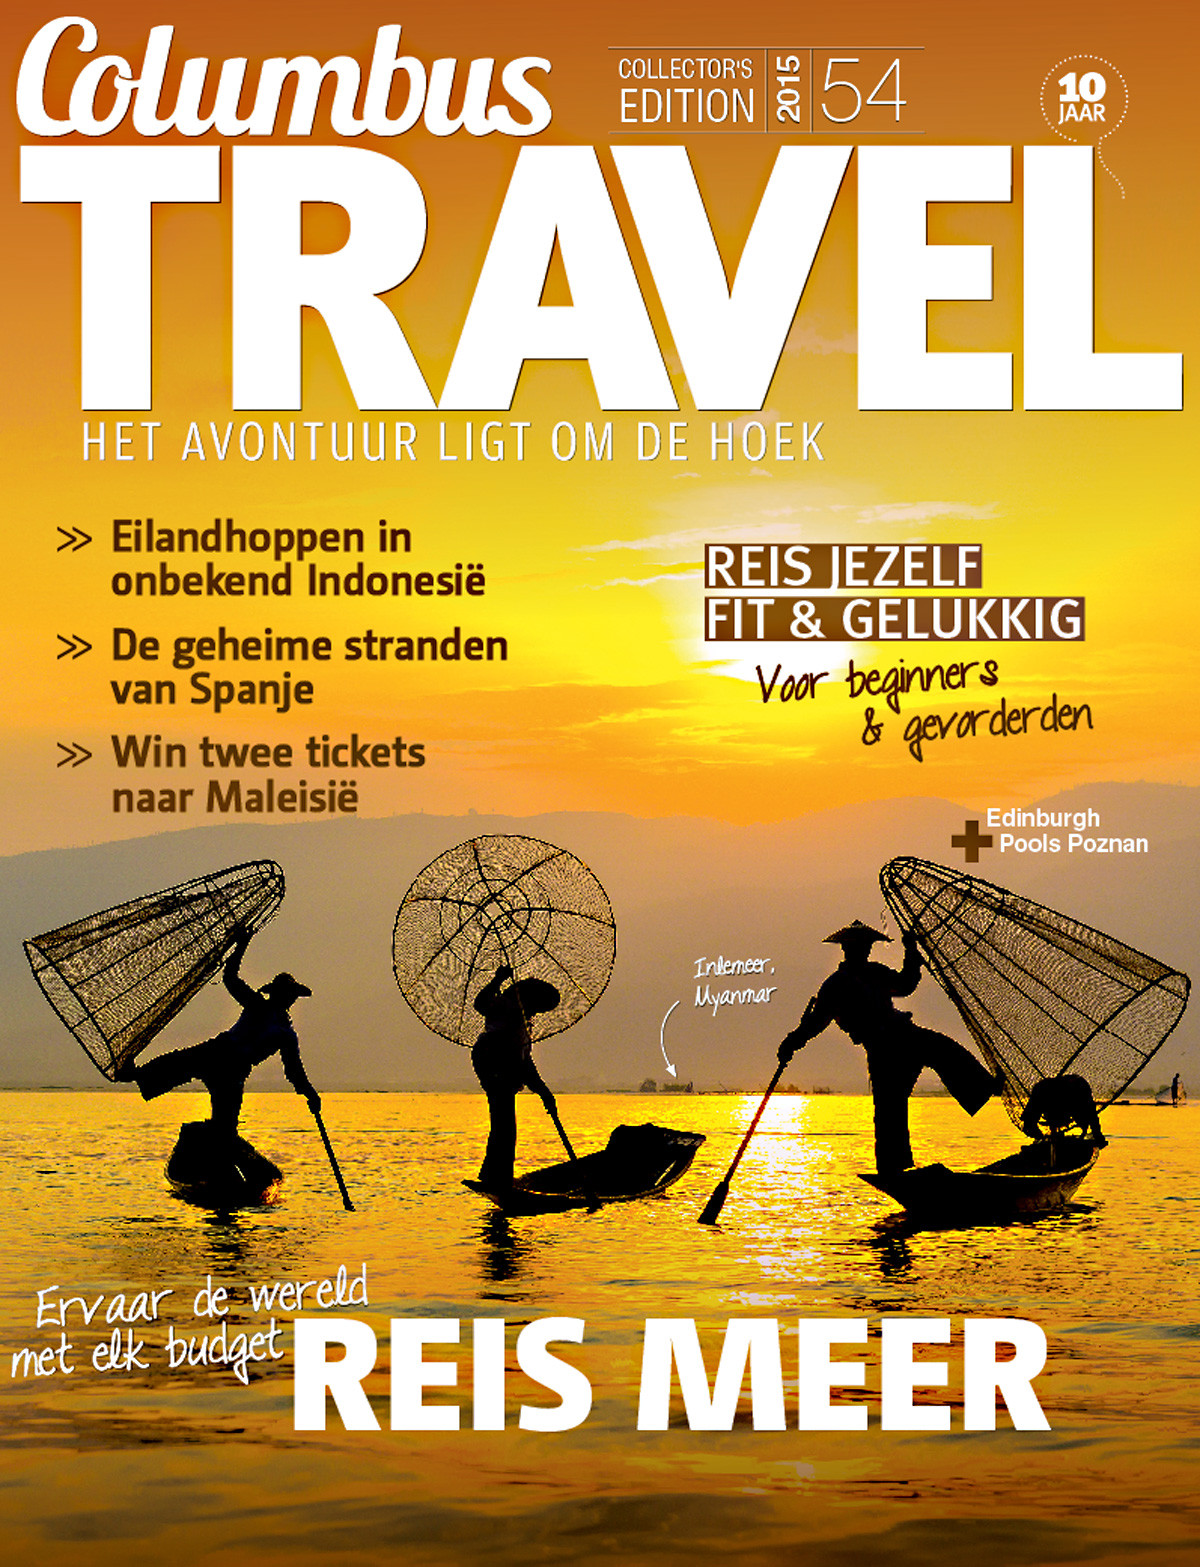 Columbus Travel magazine cover 54